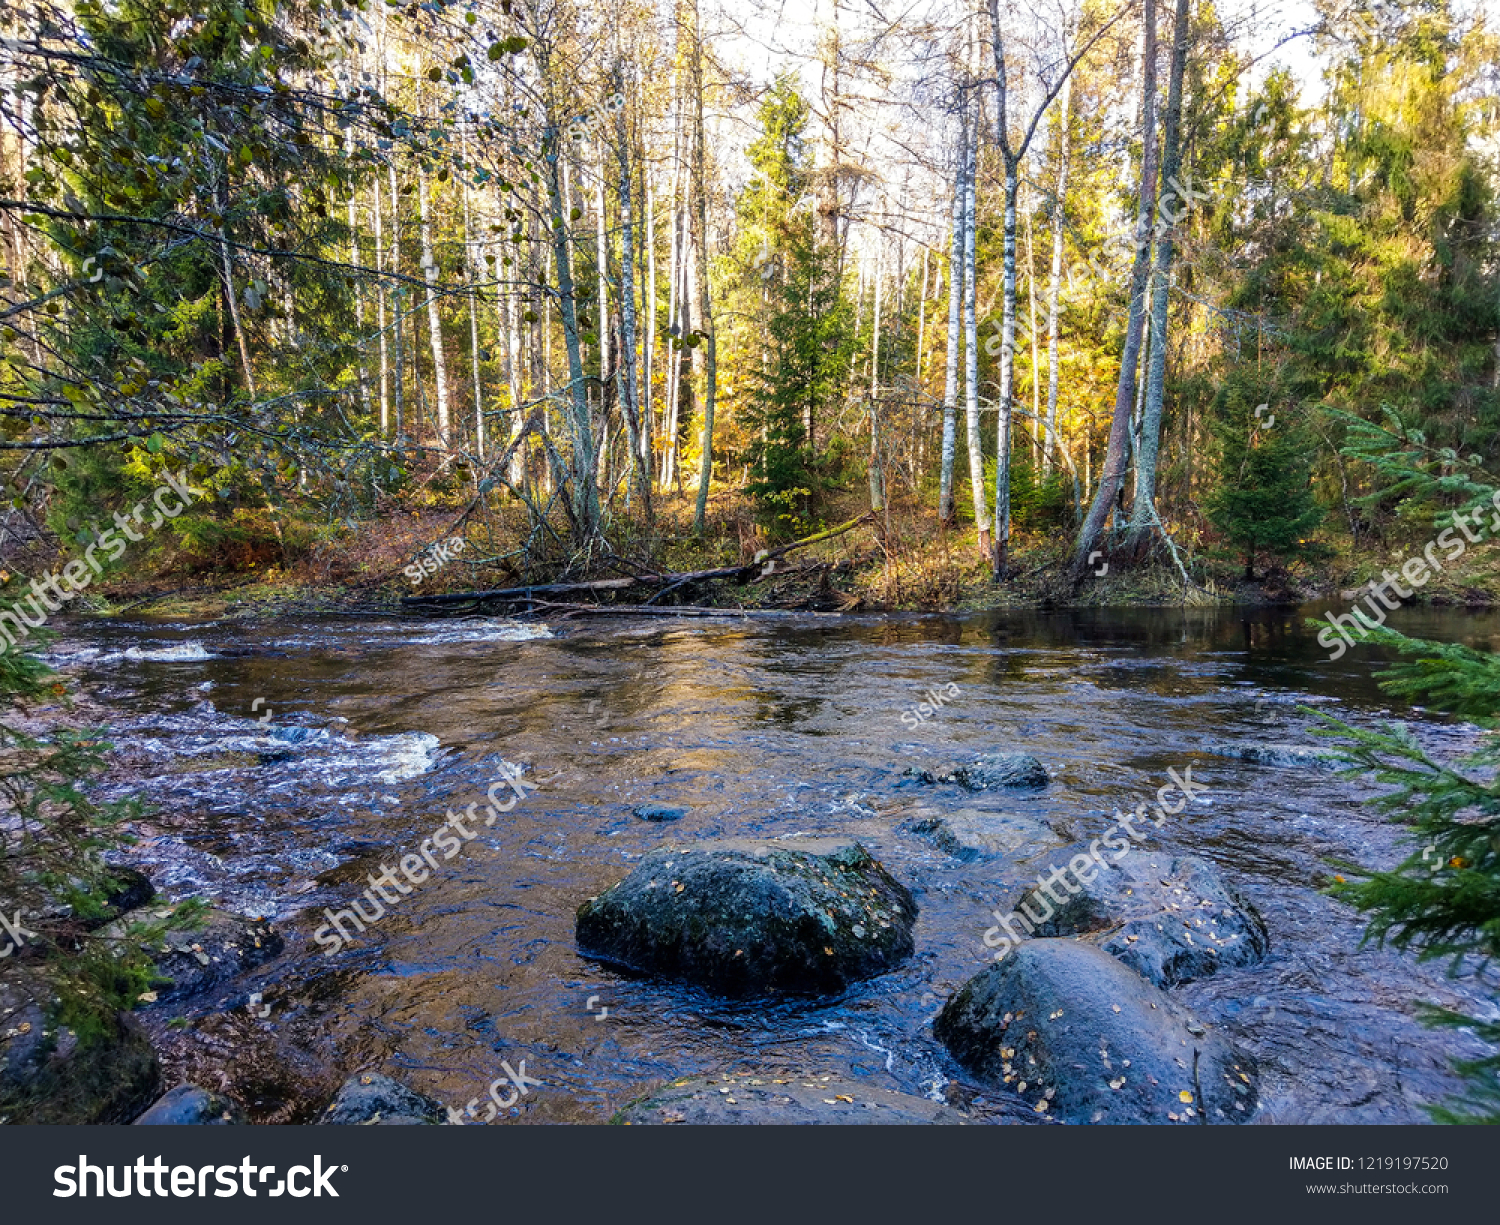 Autumn forest river rocks view. Wild river rocks in autumn forest. Autumn forest river boulders. Autumn forest river rocks landscape #1219197520